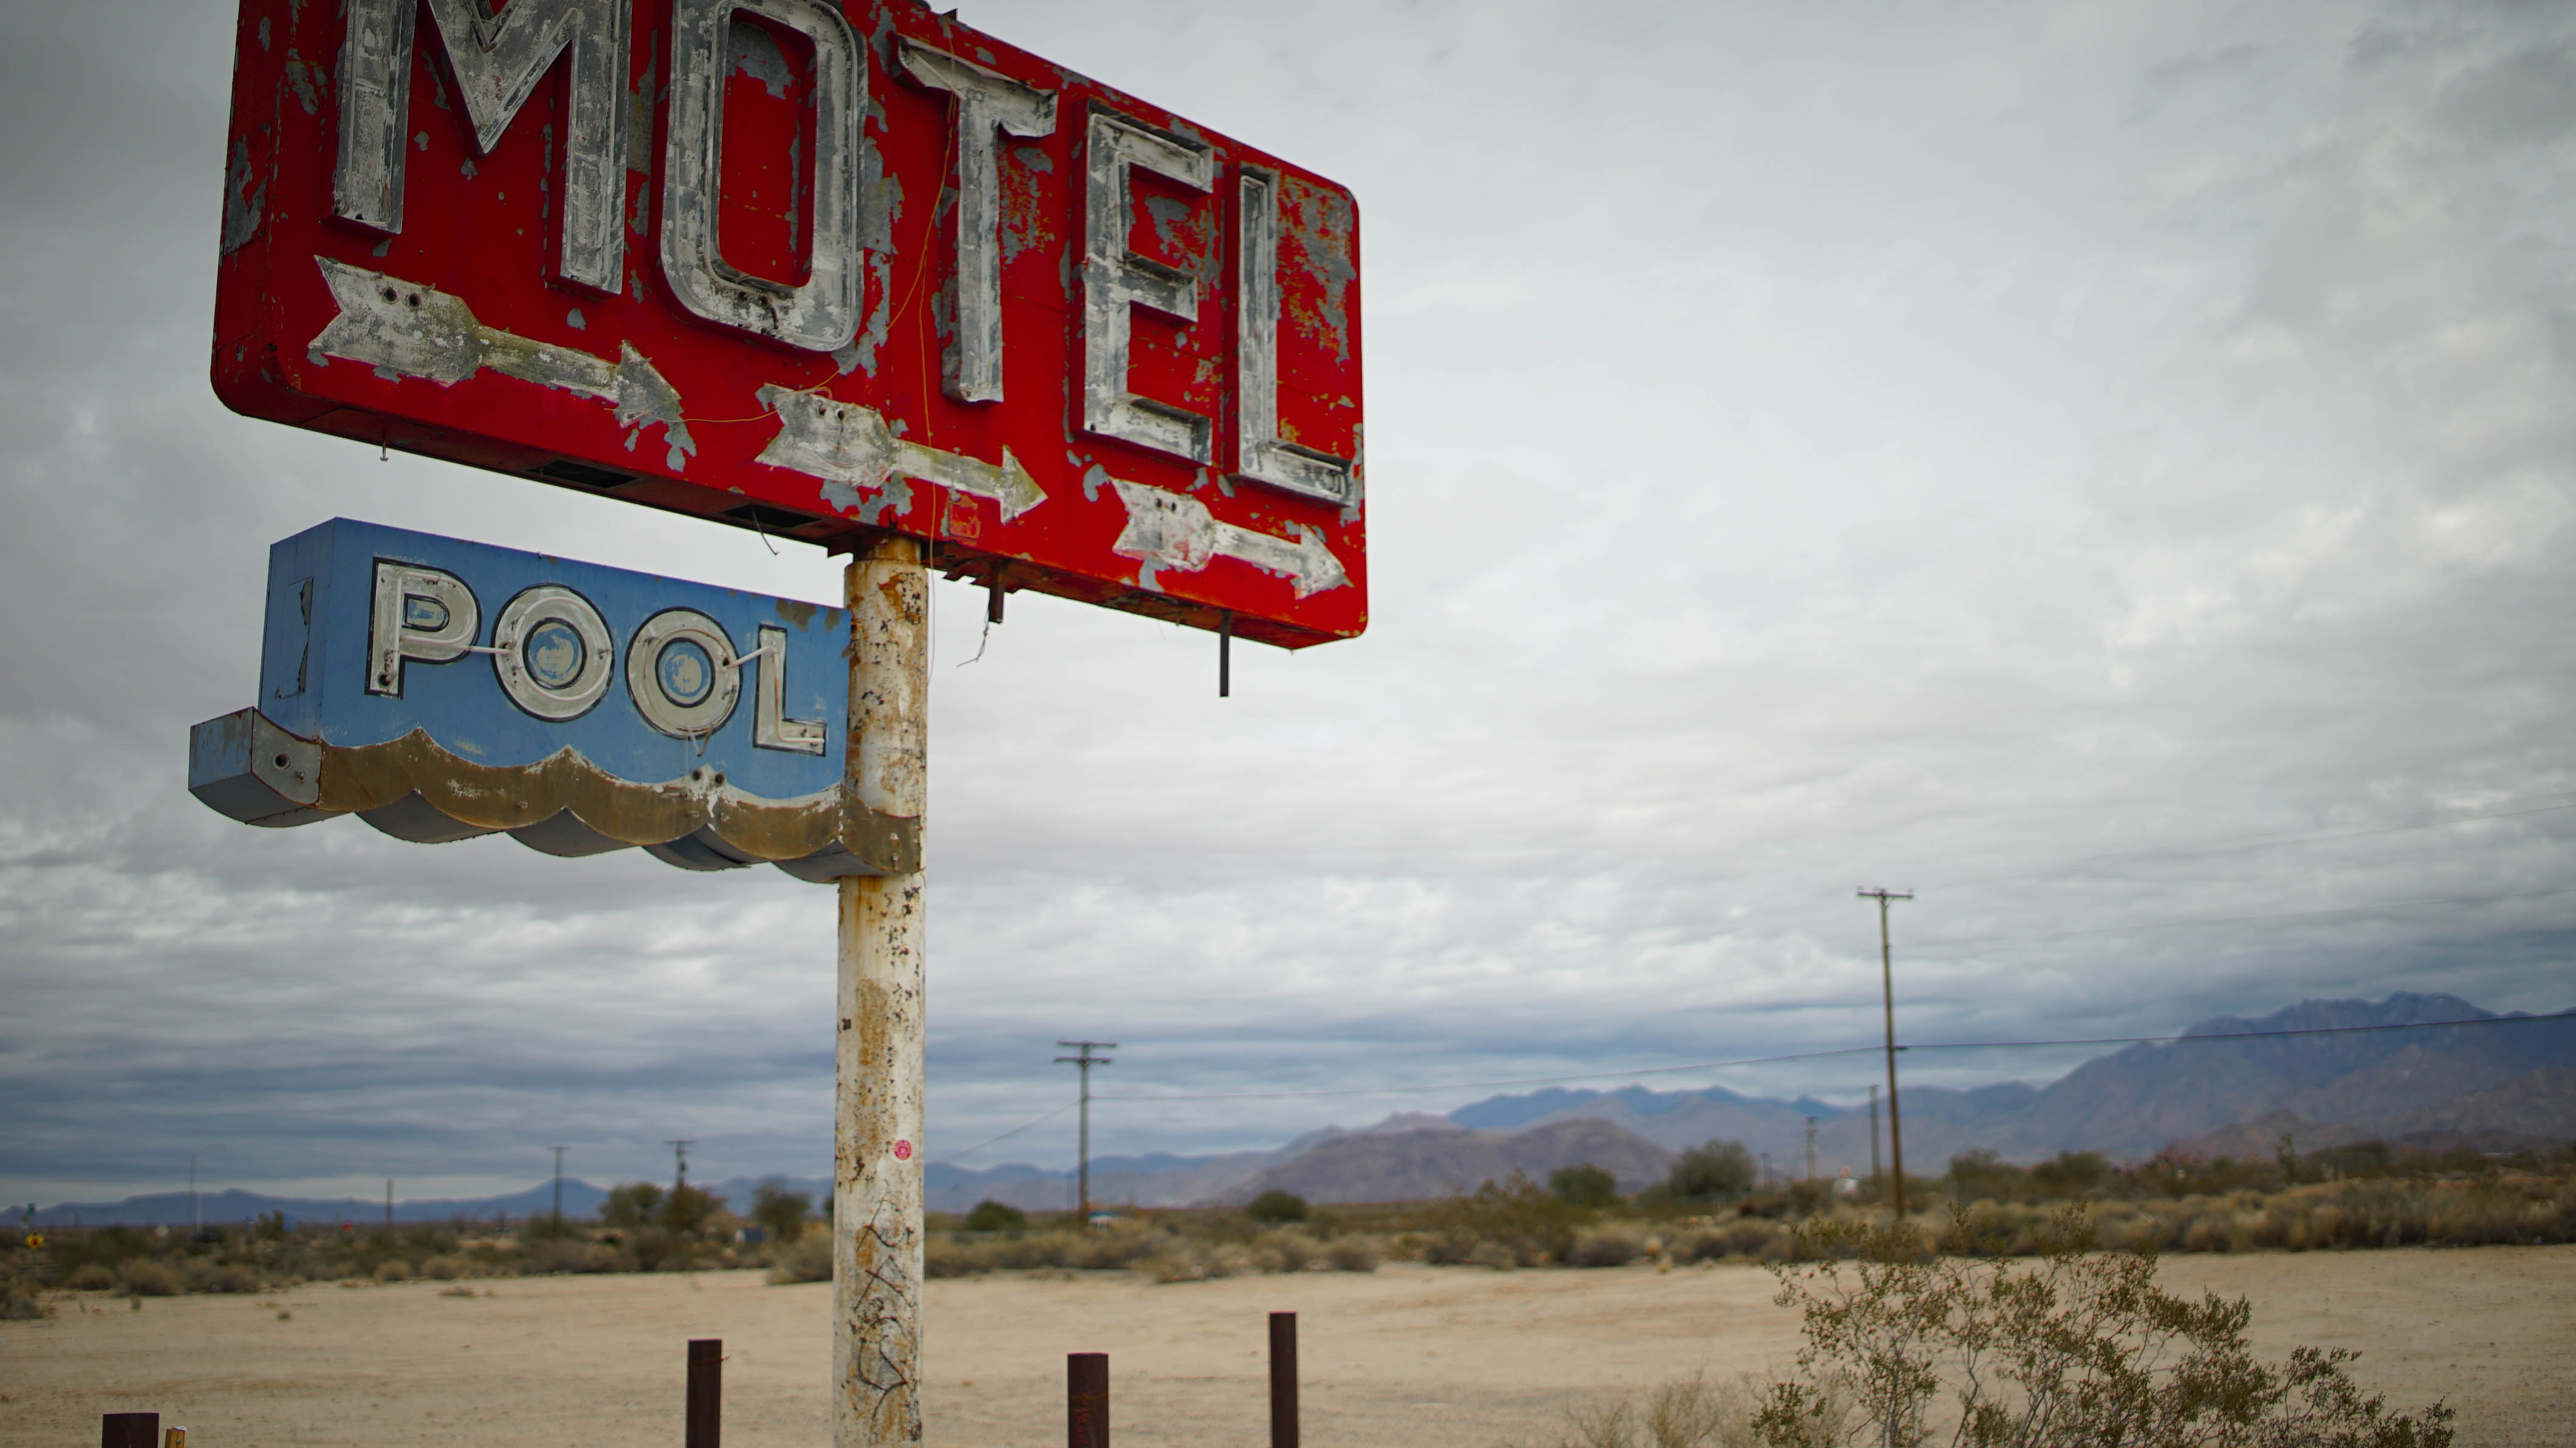 red motel signage in shallow focus